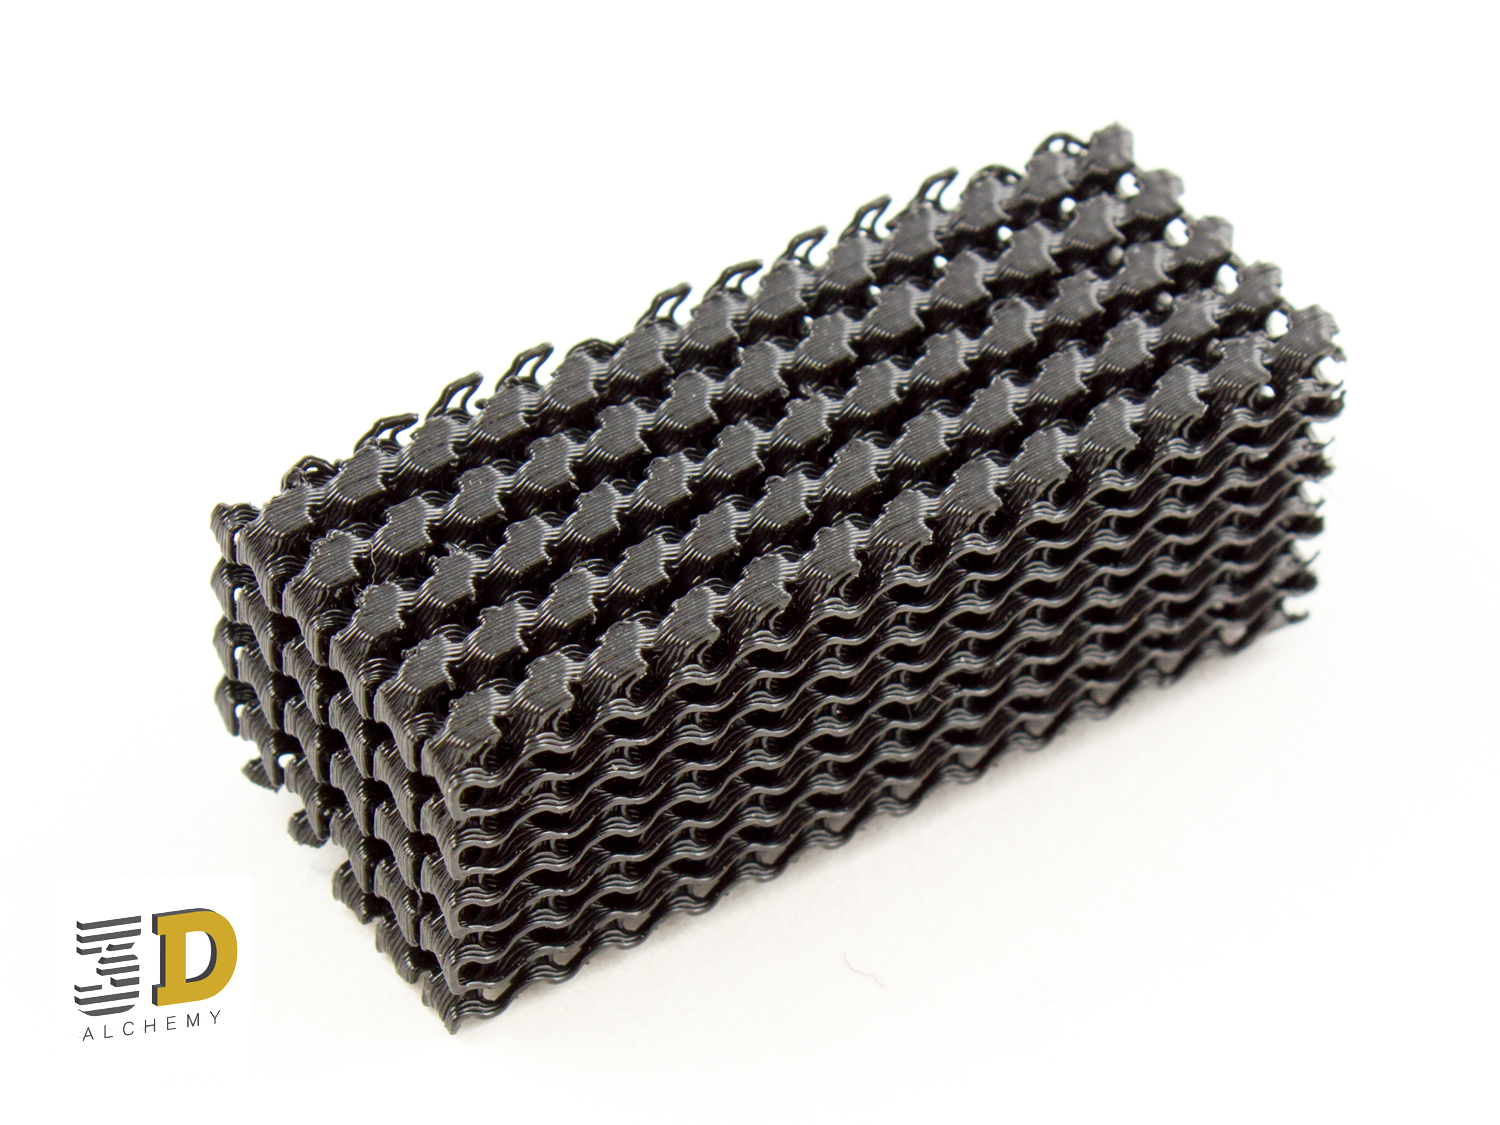 FDM Printed Rubber - TPU mesh structure.